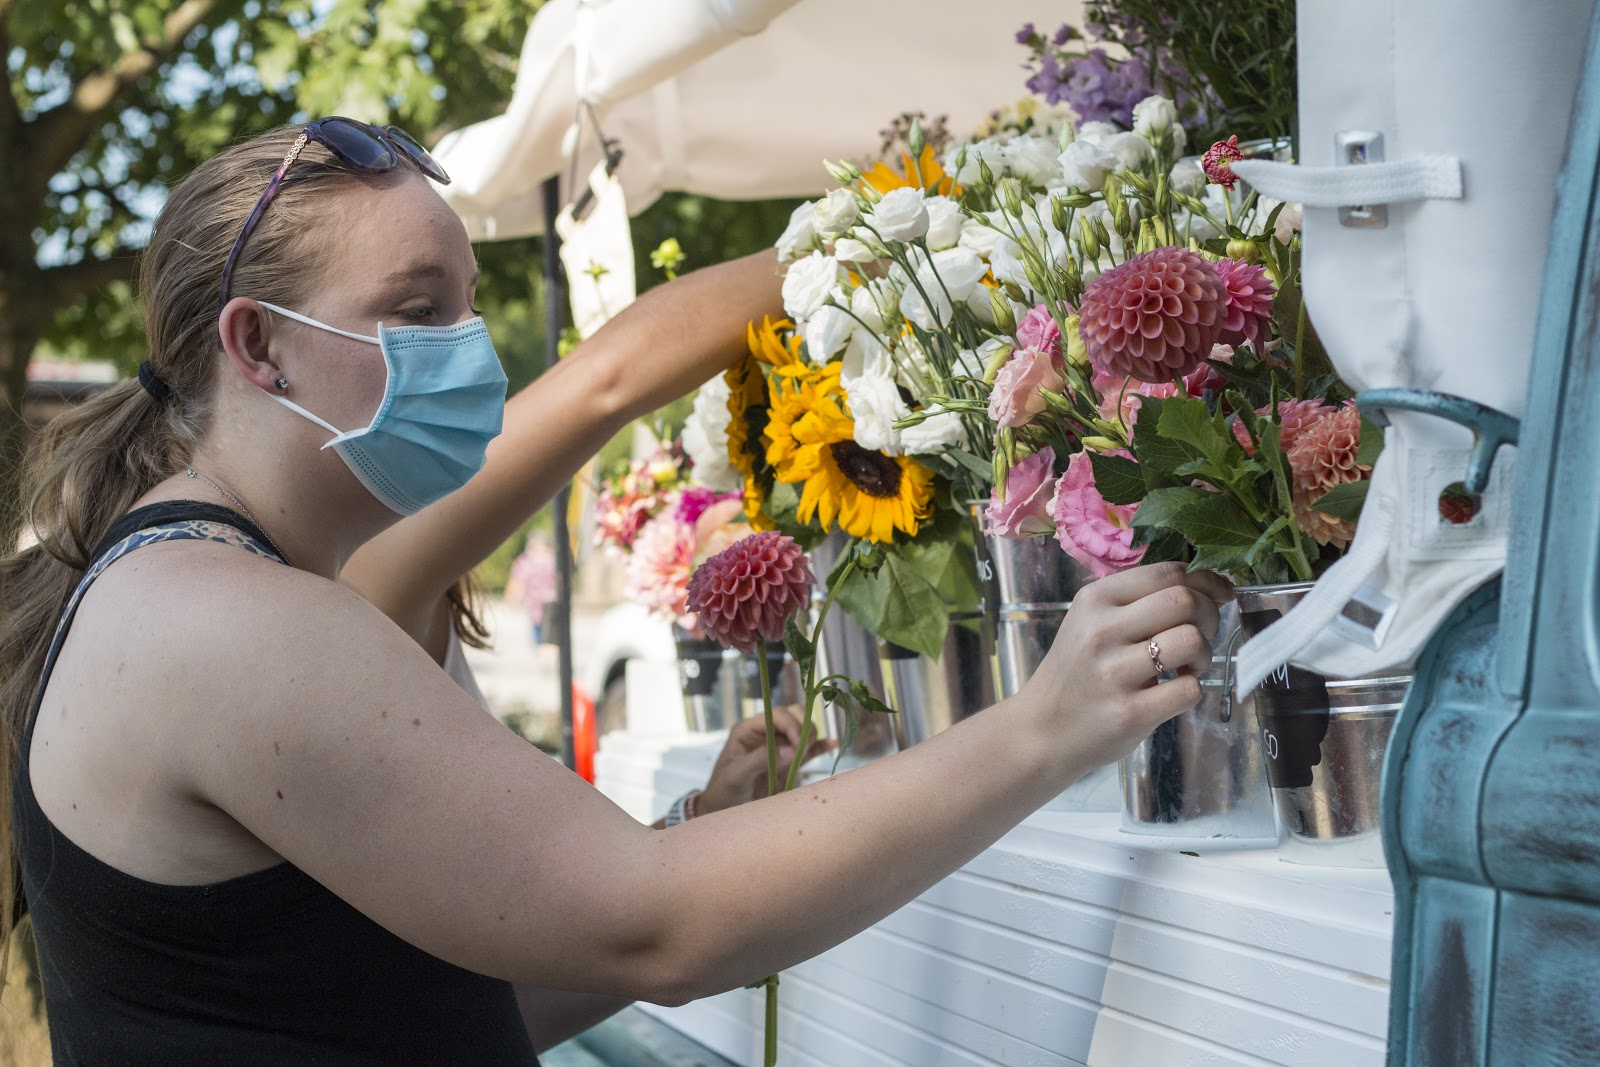 A customer brings friends to experience the joy of picking a personal bouquet at the Woodville Farmer's Market. Photo by Joni Johnson.